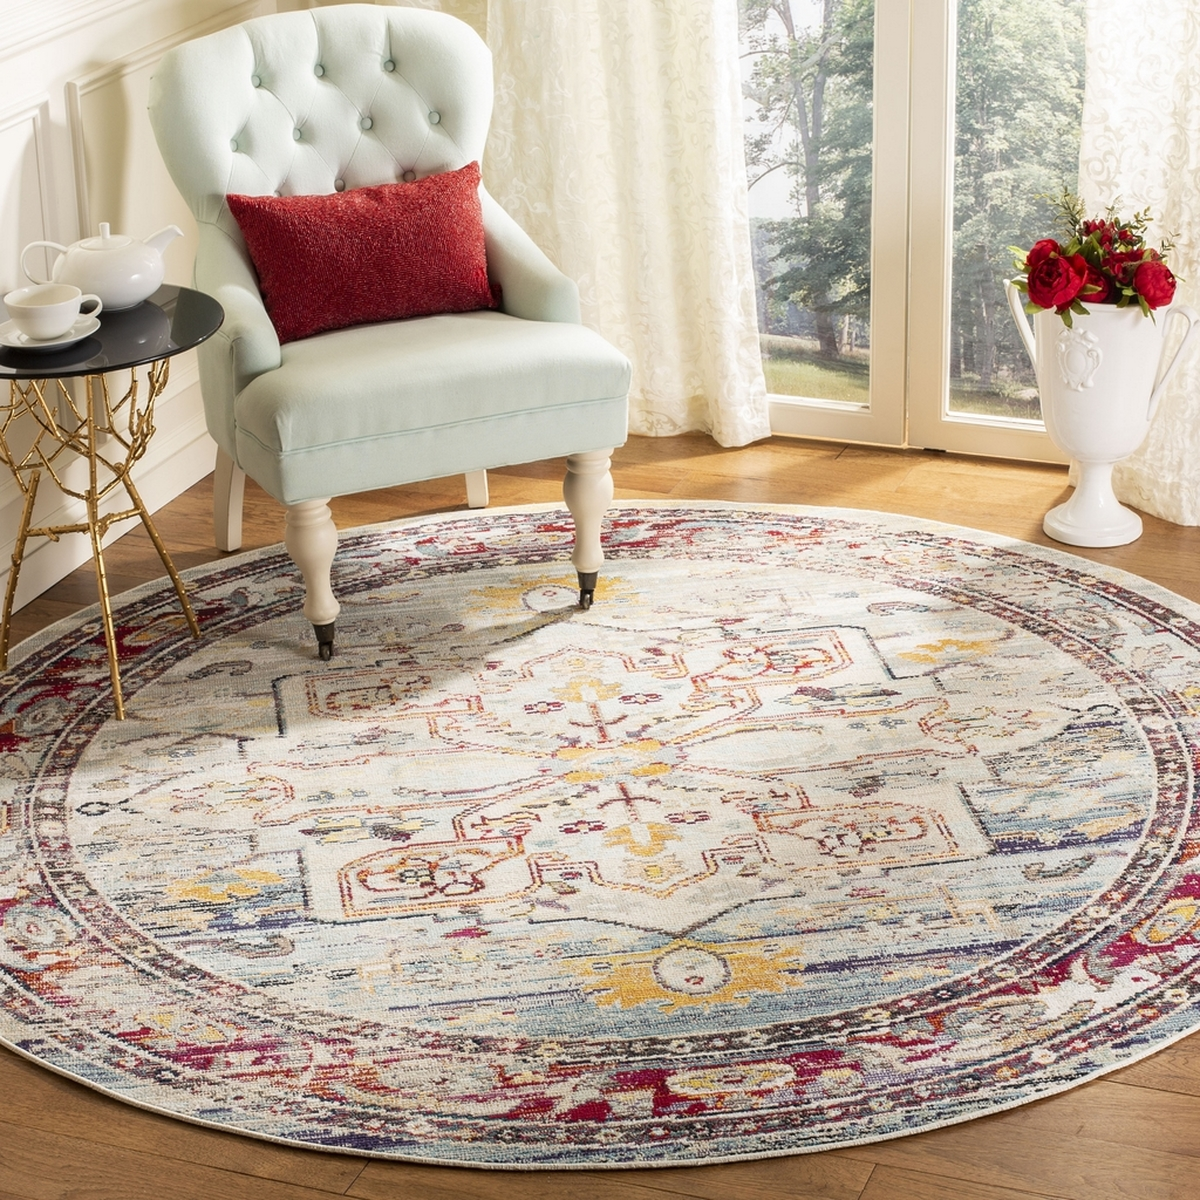 Rug Crs503c Crystal Area Rugs By Safavieh